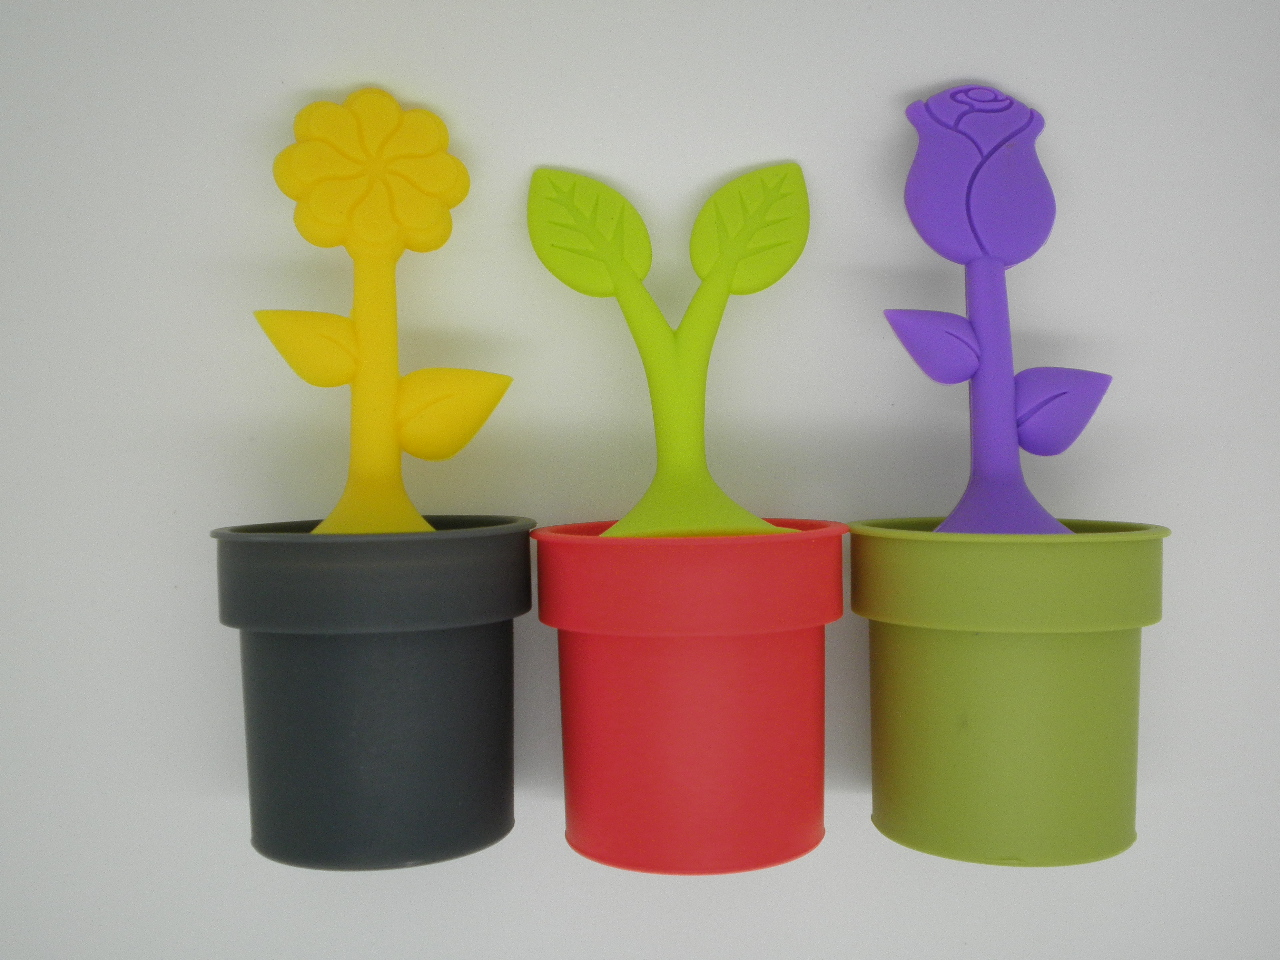 http://www.refinehksilicone.cn/data/images/product/20180417100850_237.JPG